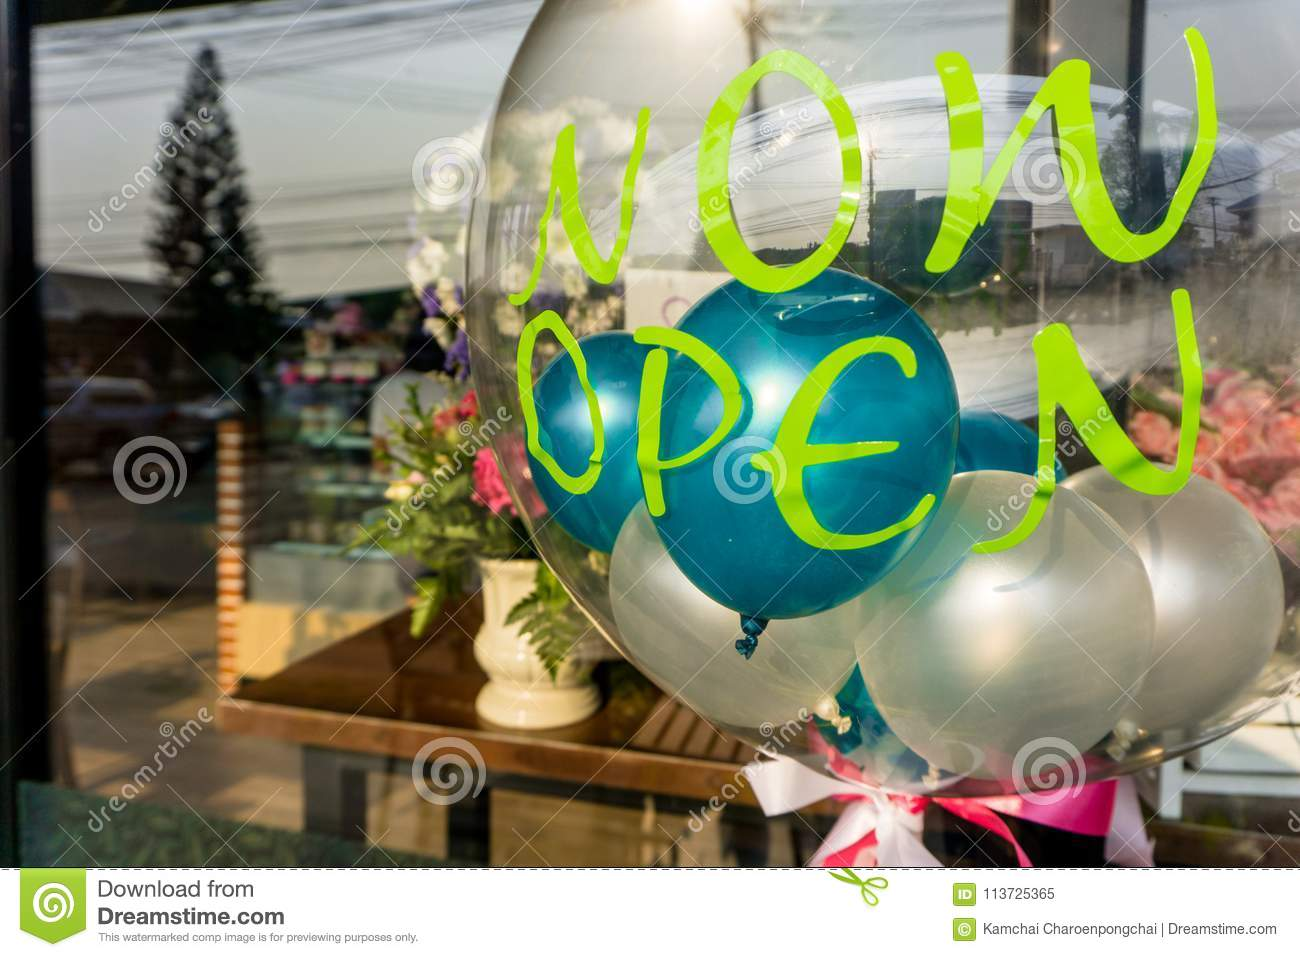 `Now Open` sticker on transparent balloon with other small colourful balloons inside.